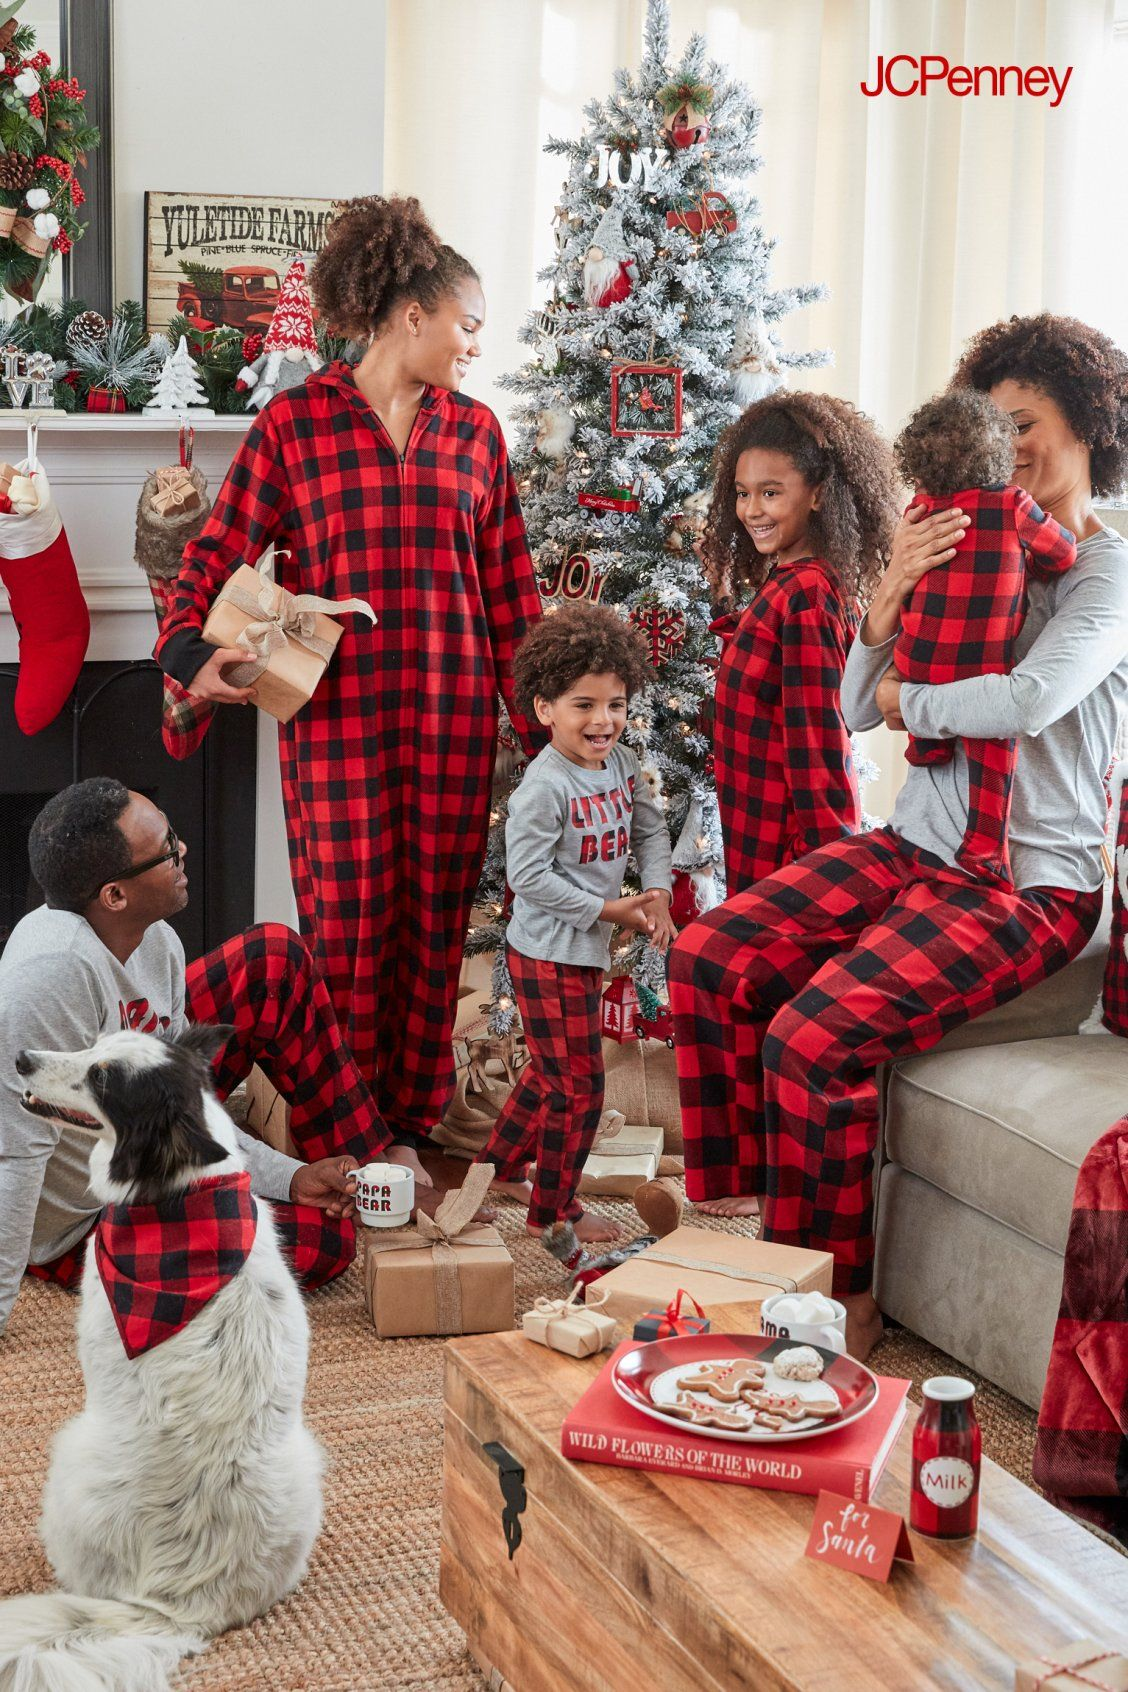 474cd76d91 Family pjs are in full effect this holiday season. Super cute for holiday  pictures